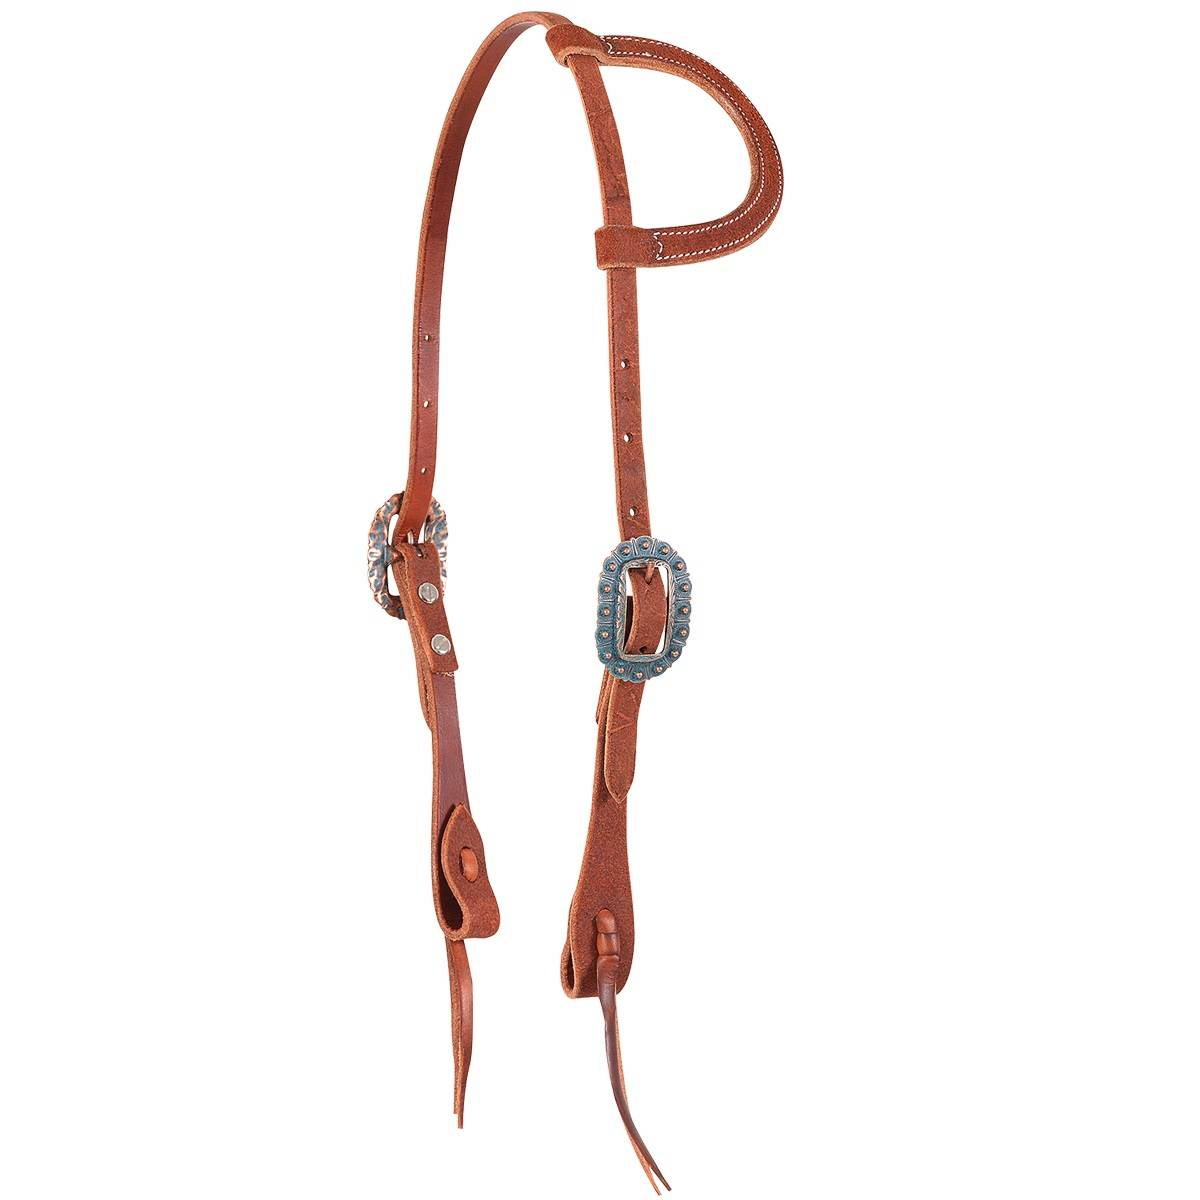 Martin Slip Ear Copper Patina Roughout Headstall- Chestnut